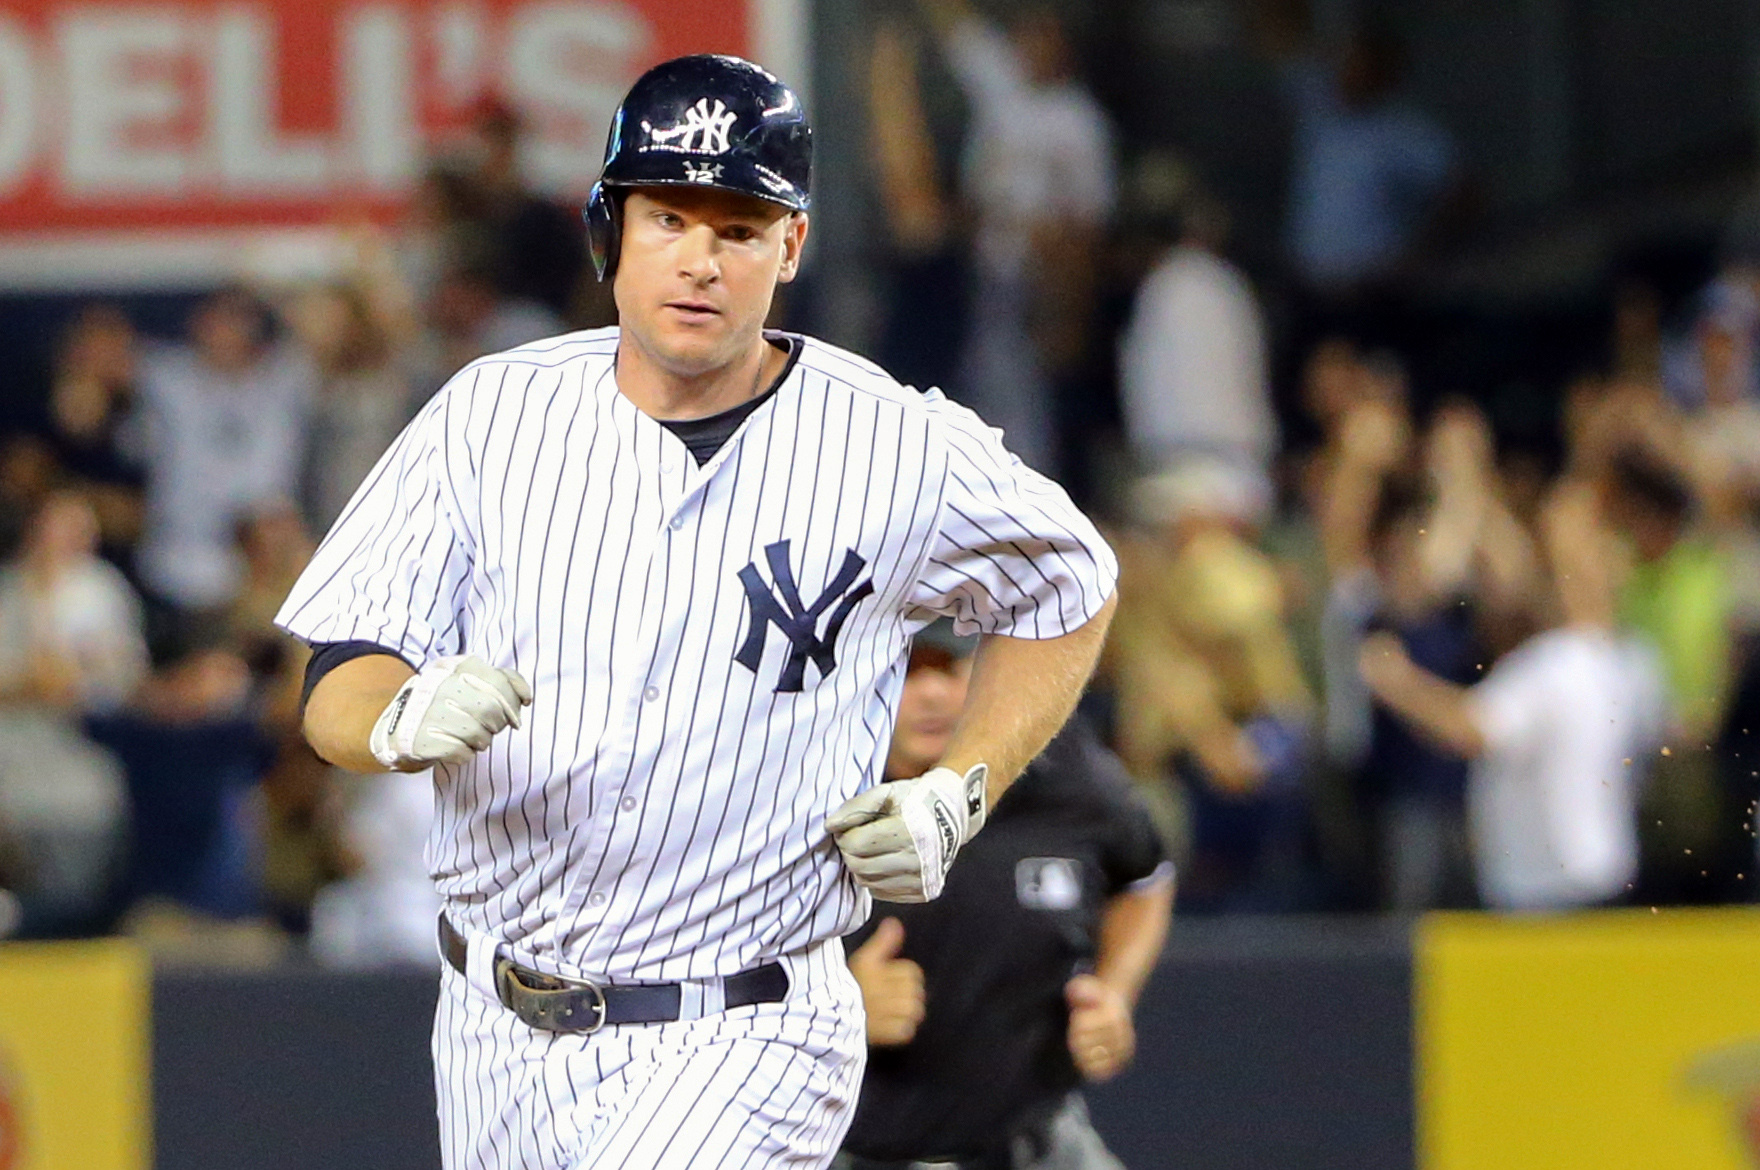 Chase Headley, Yankees agree to 4-year, $50 million contract